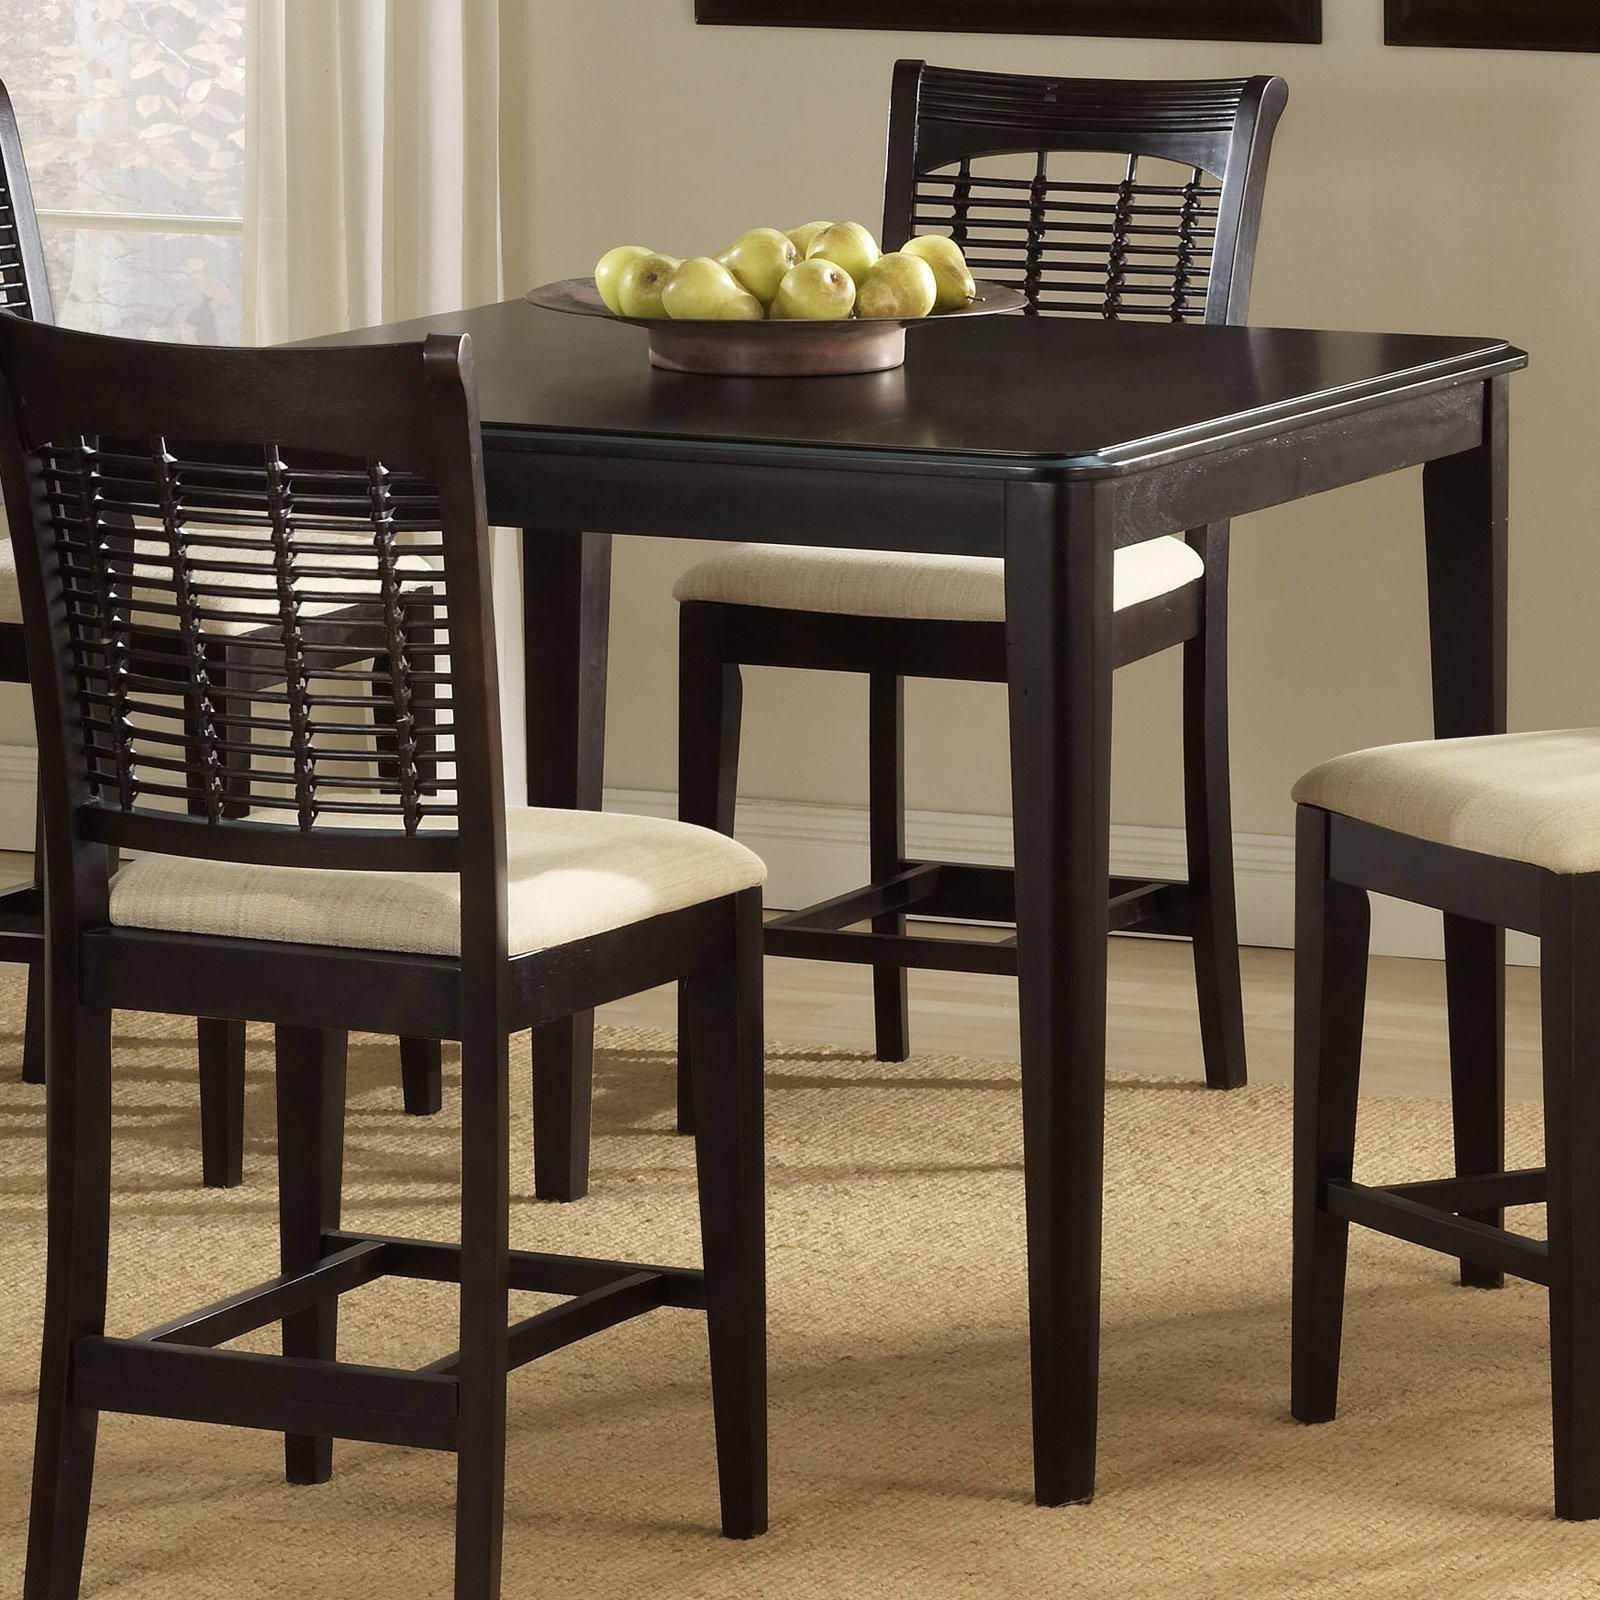 Hillsdale Dining Table Hillsdale Furniture Bayberry Counter Height Dining Table Walmartcom